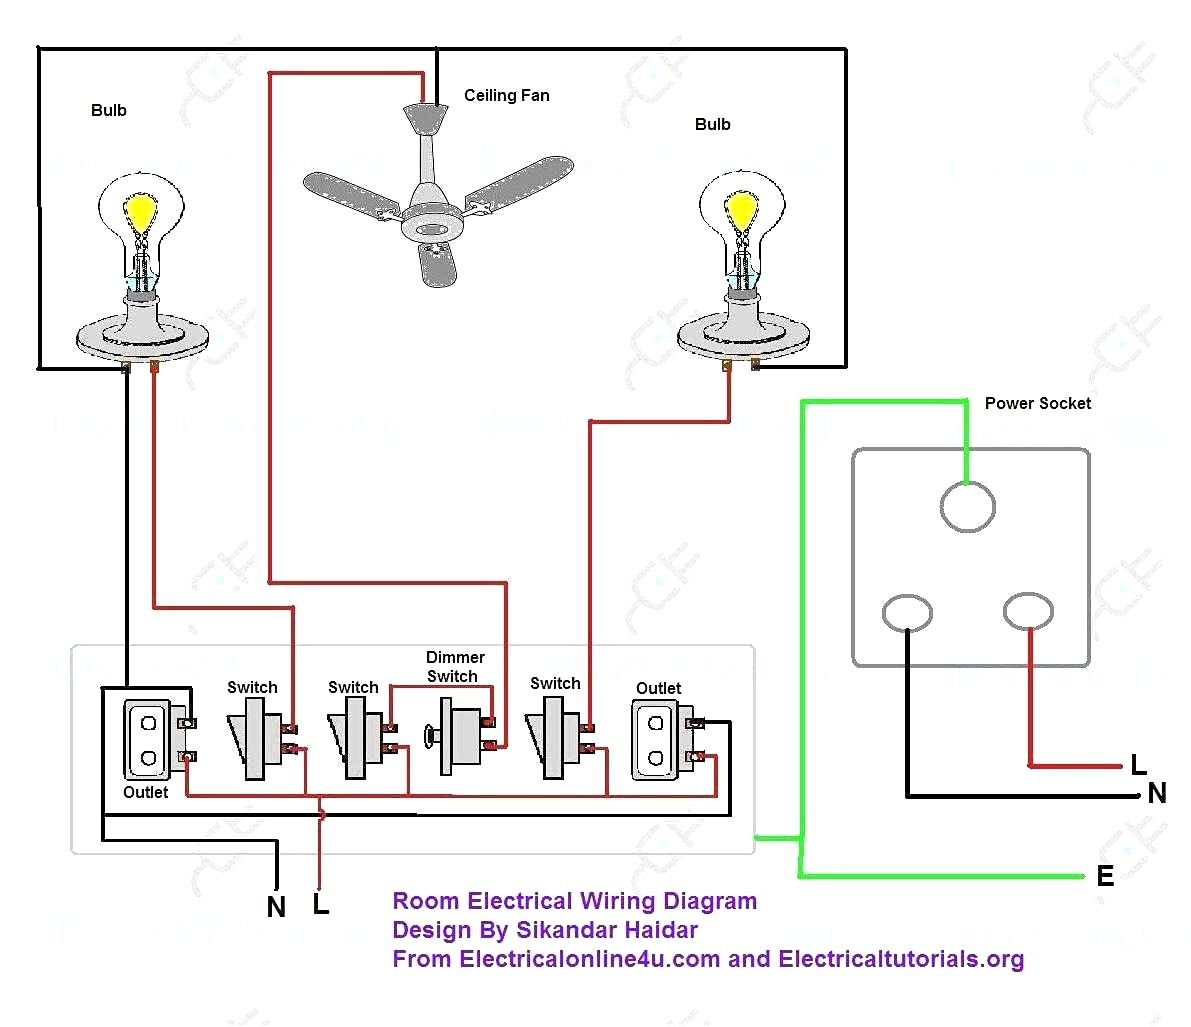 5 Best Sample Of Electrical Wiring Diagram House Design Ideas ,  https://bacamajalah.com/5-best-sample-of-… | Home electrical wiring, House  wiring, Electrical wiringwww.pinterest.co.kr